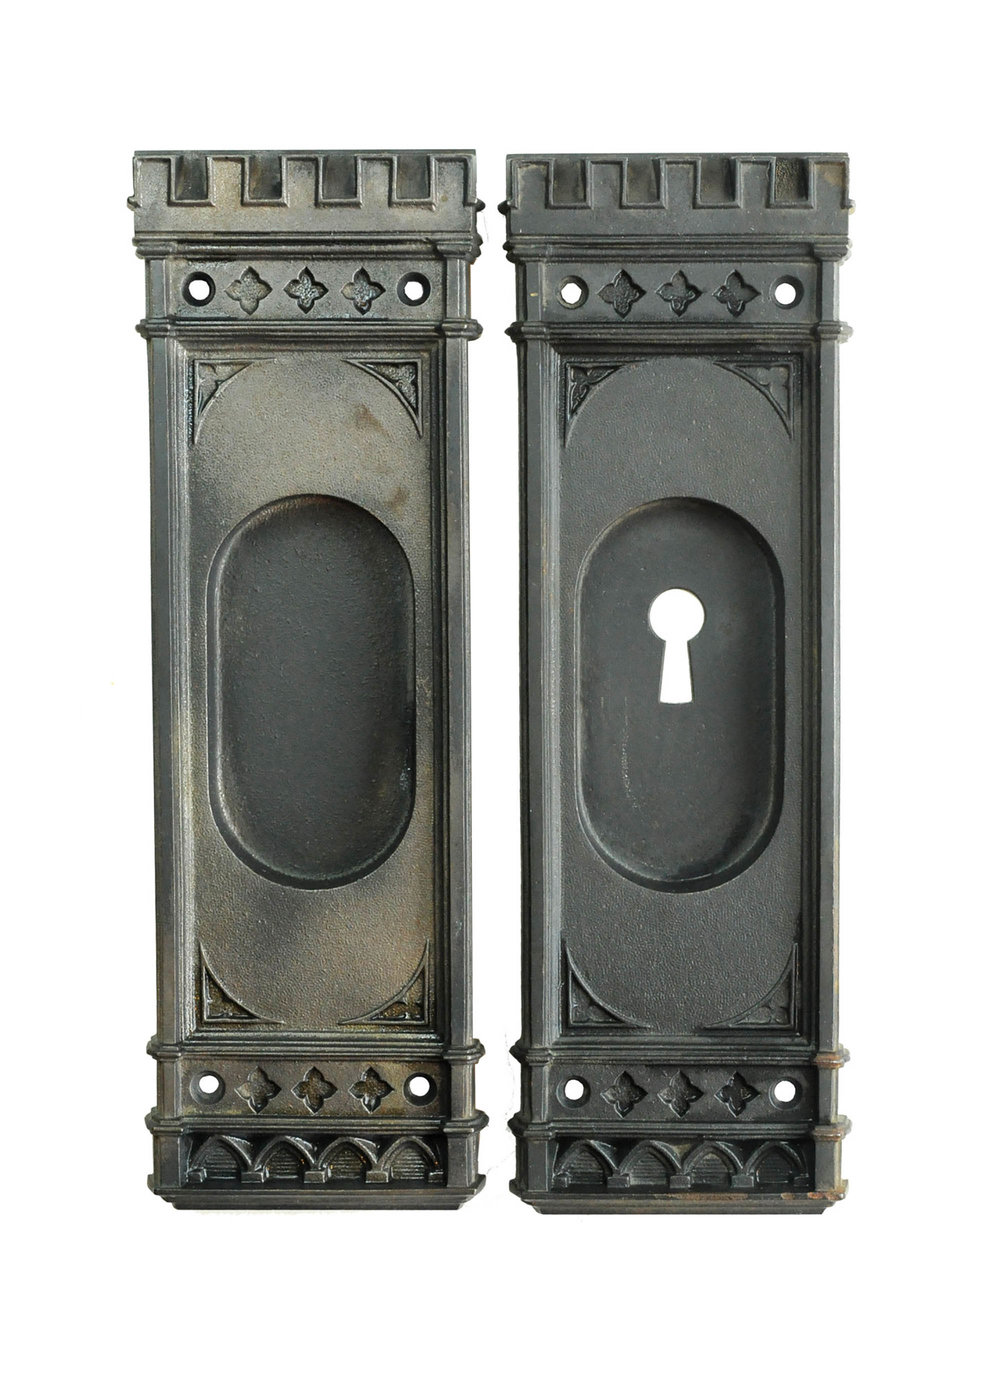 CAST IRON GOTHIC POCKET DOOR PULL SET AA# H20106   1 set available $150.00 for set